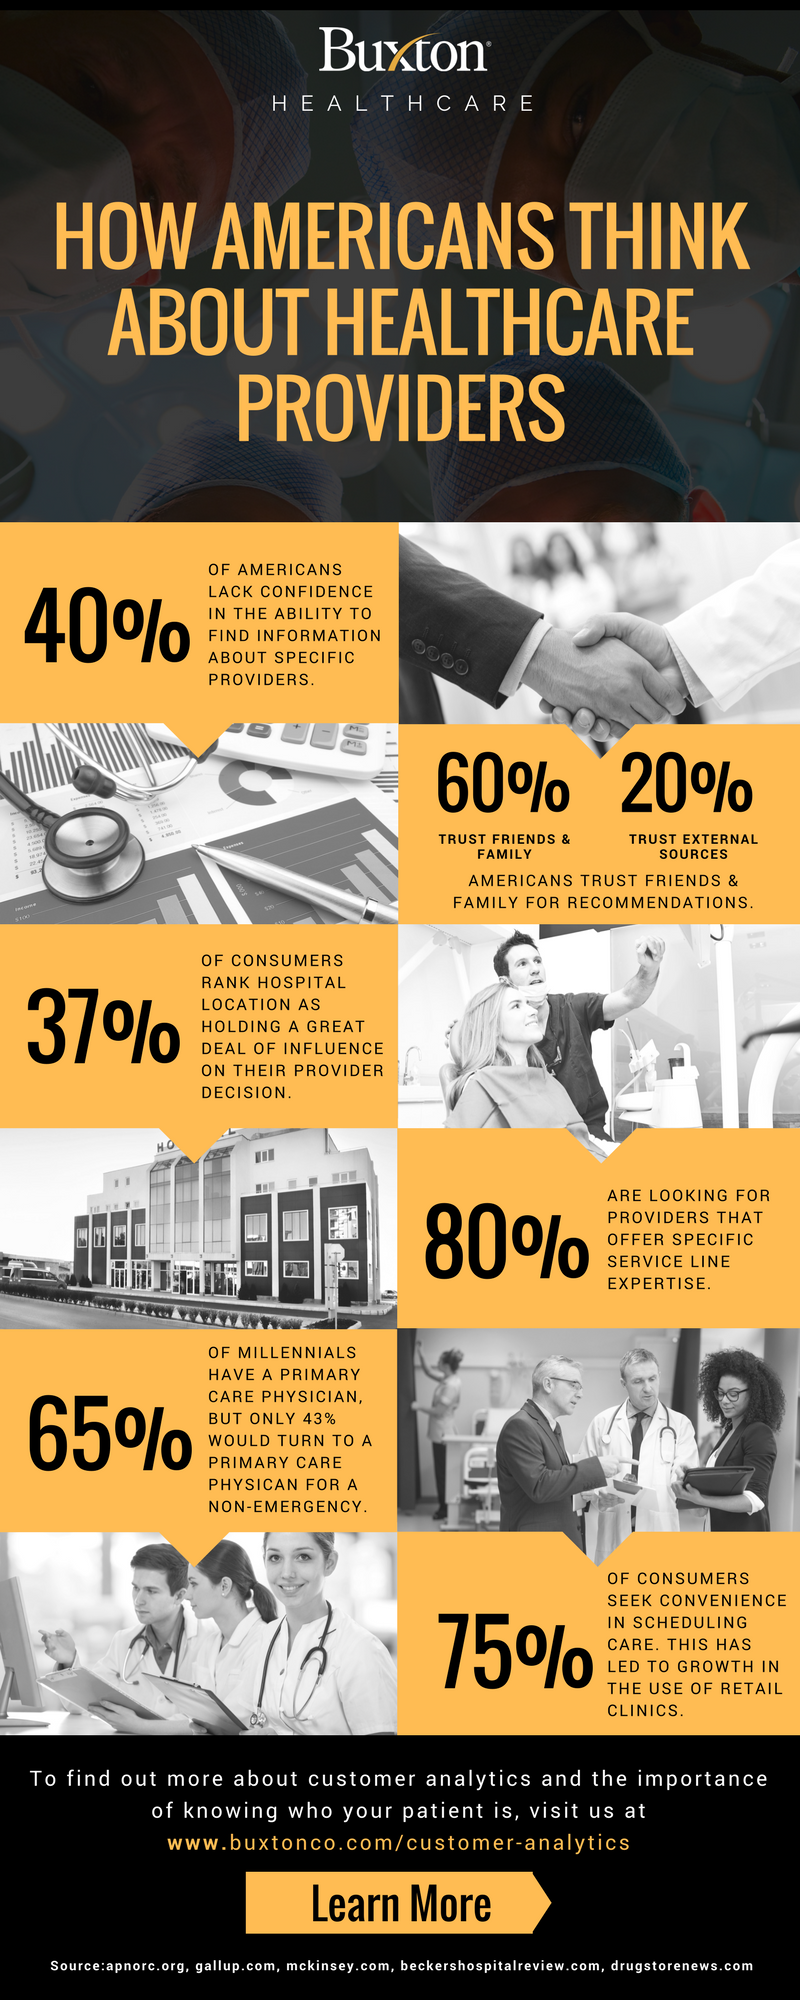 Infographic sharing what influences Americans' decisions when selecting a healthcare provider.